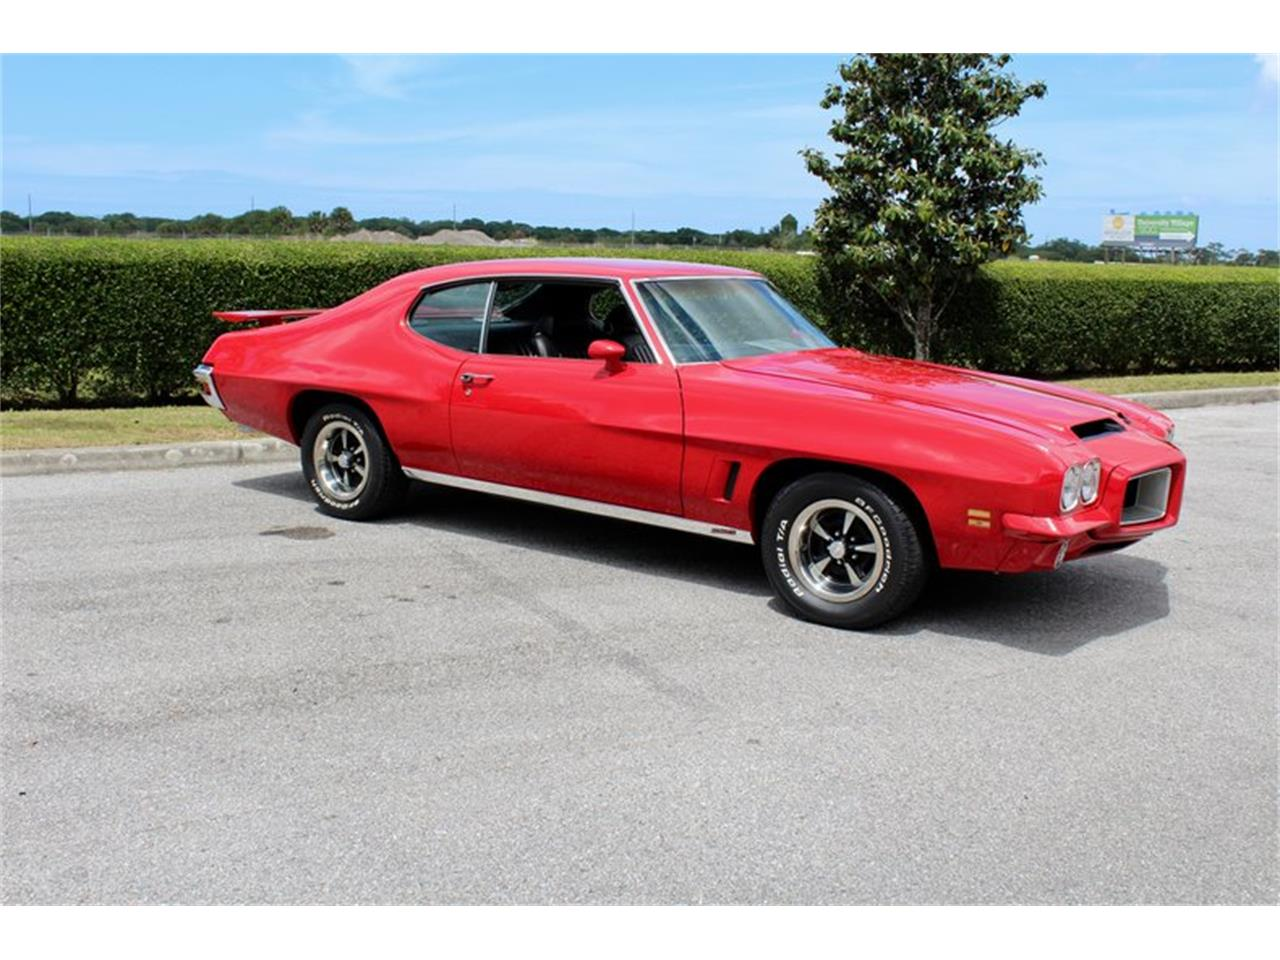 Large Picture of 1972 Pontiac LeMans located in Florida - $19,500.00 Offered by Classic Cars of Sarasota - PUAK